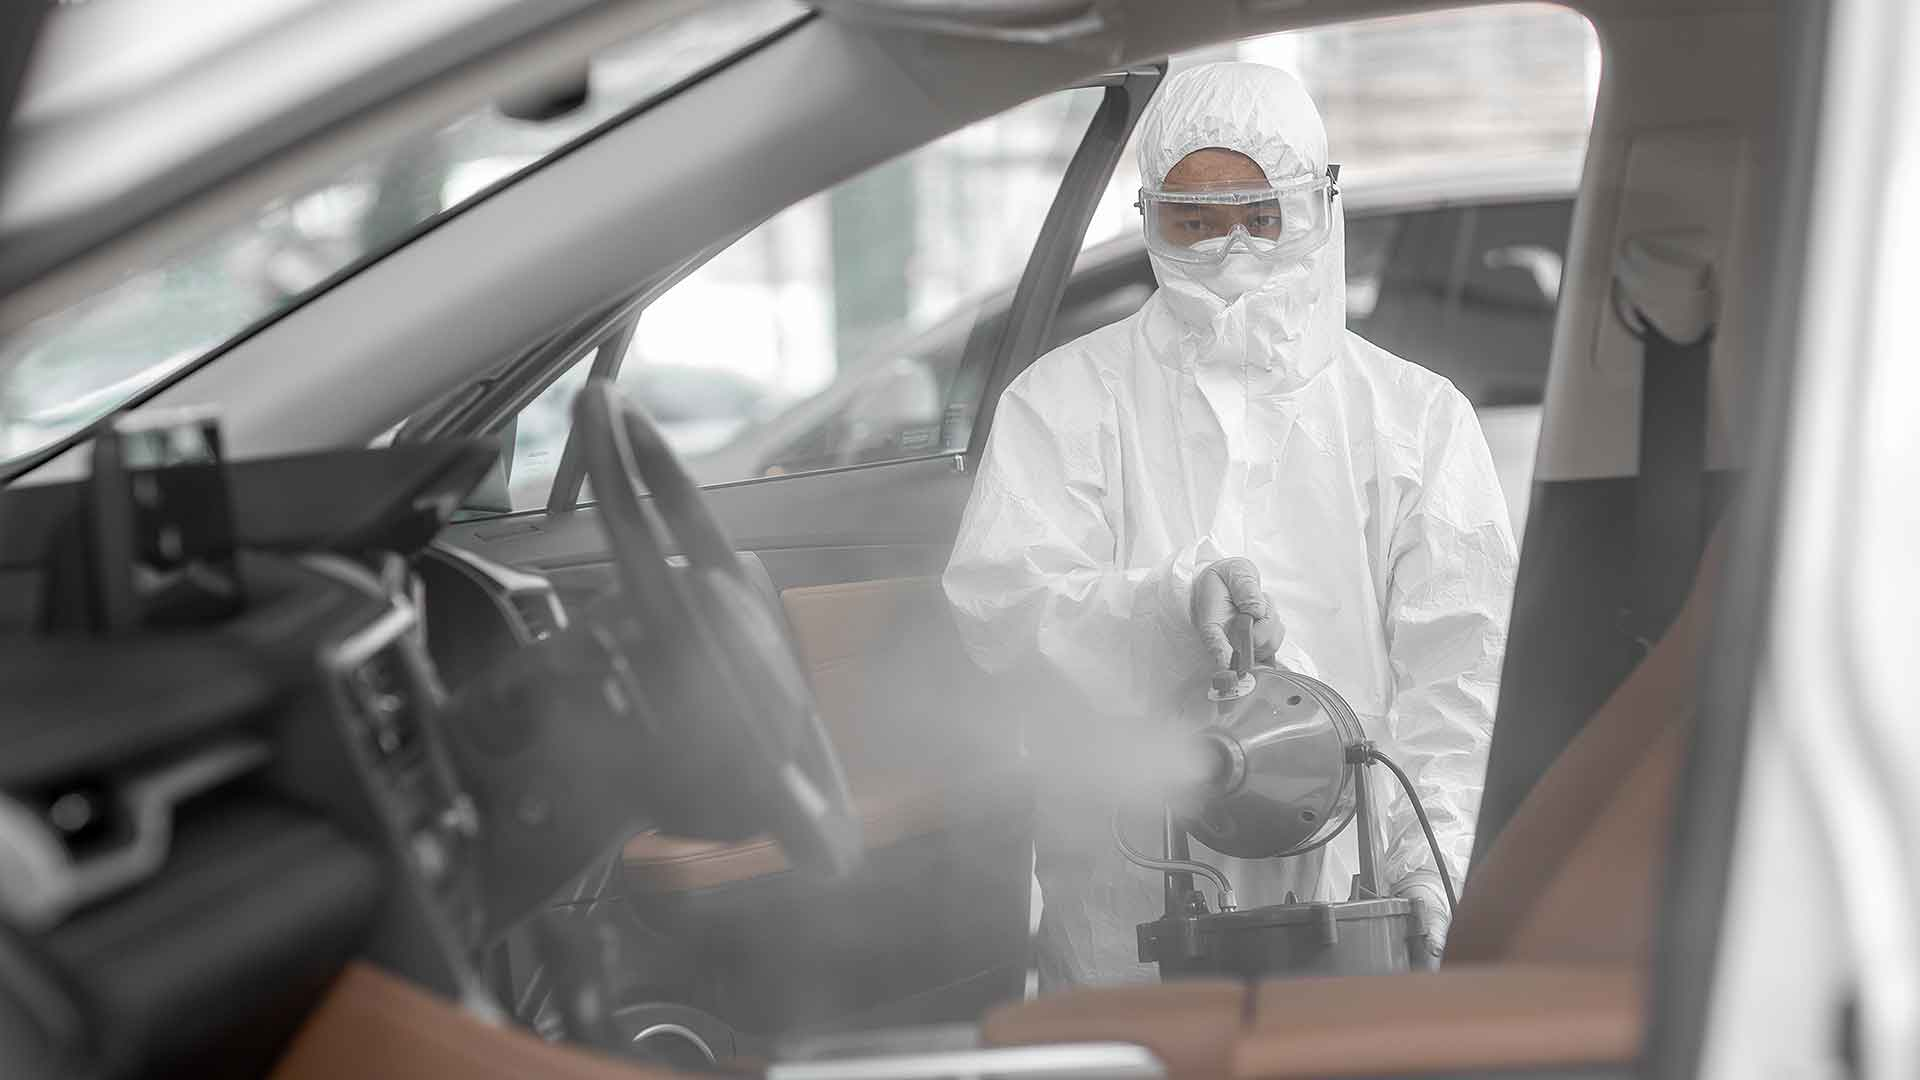 Technician spraying an anti-baterial mist into a vehicle